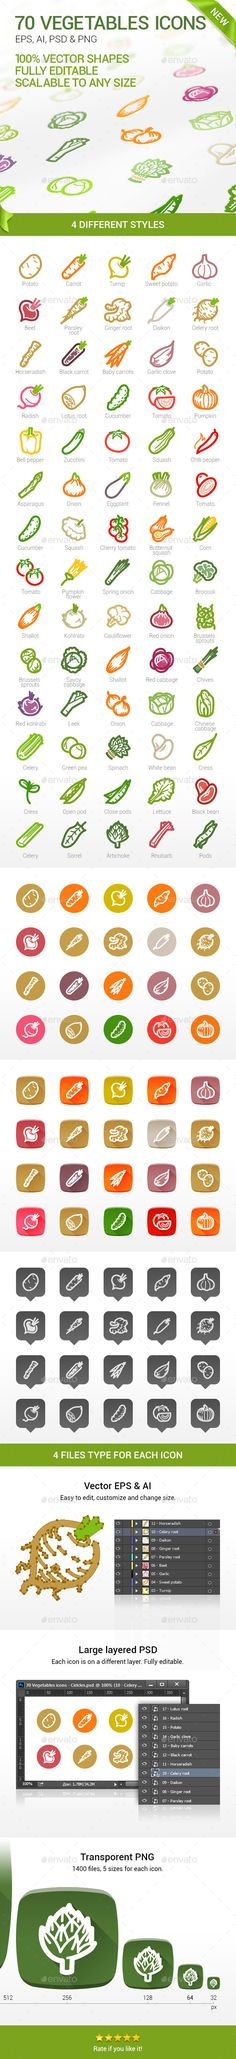 70 Vegetables Icons   Buy and Download: http://graphicriver.net/item/70-vegetables-icons/8995279?WT.ac=category_thumb&WT.z_author=belonogovalexey&ref=ksioks